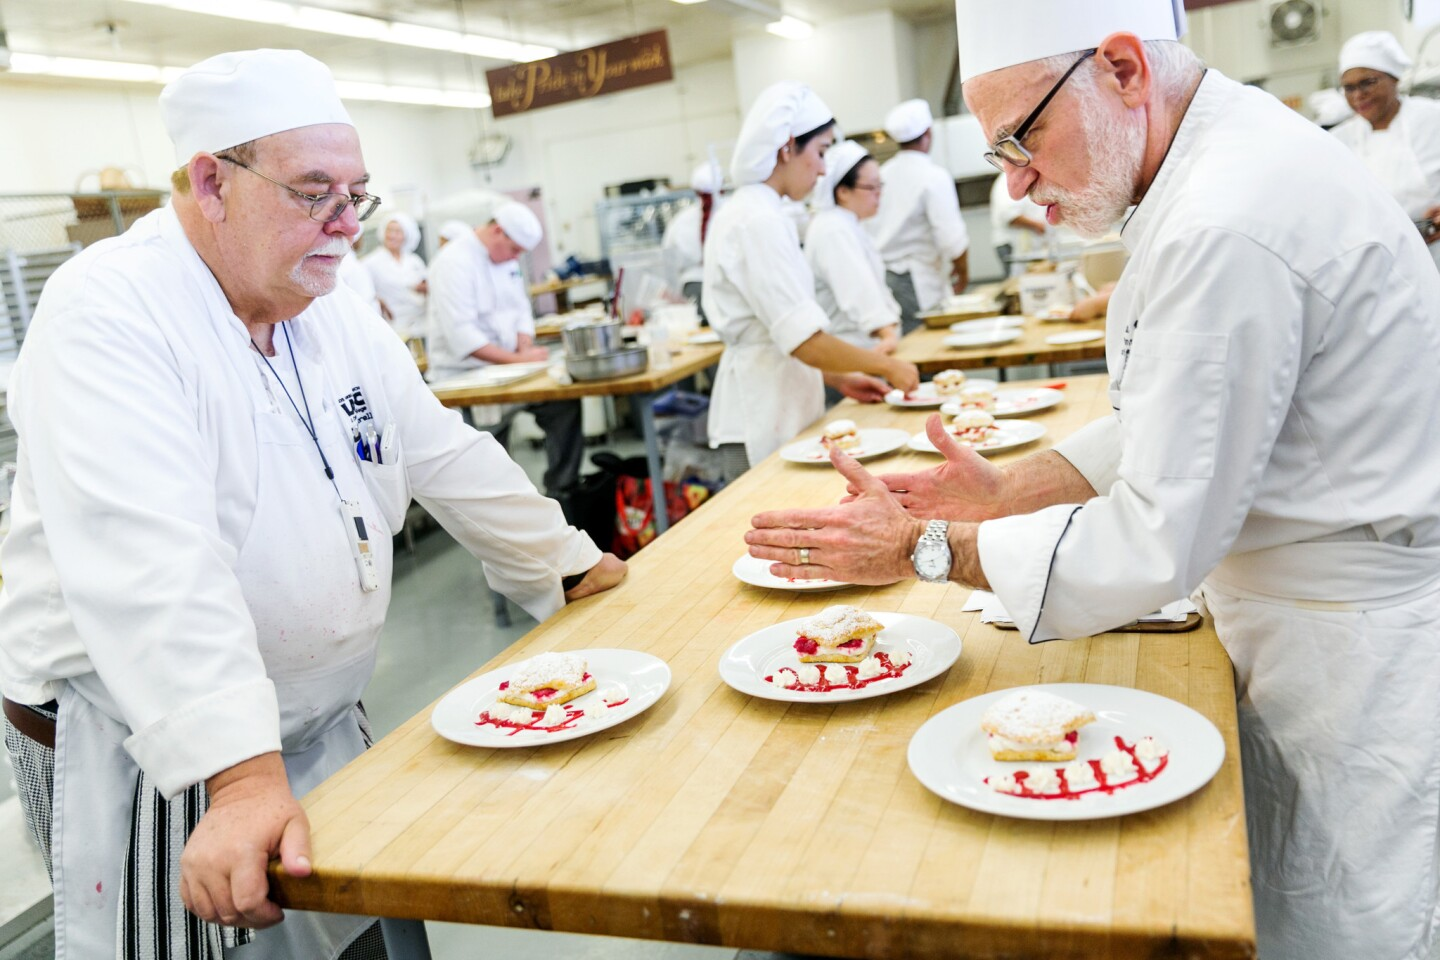 Melvin Norell, left, gets feedback from instructor Robert Wemischner in culinary class at Los Angeles Trade Tech.